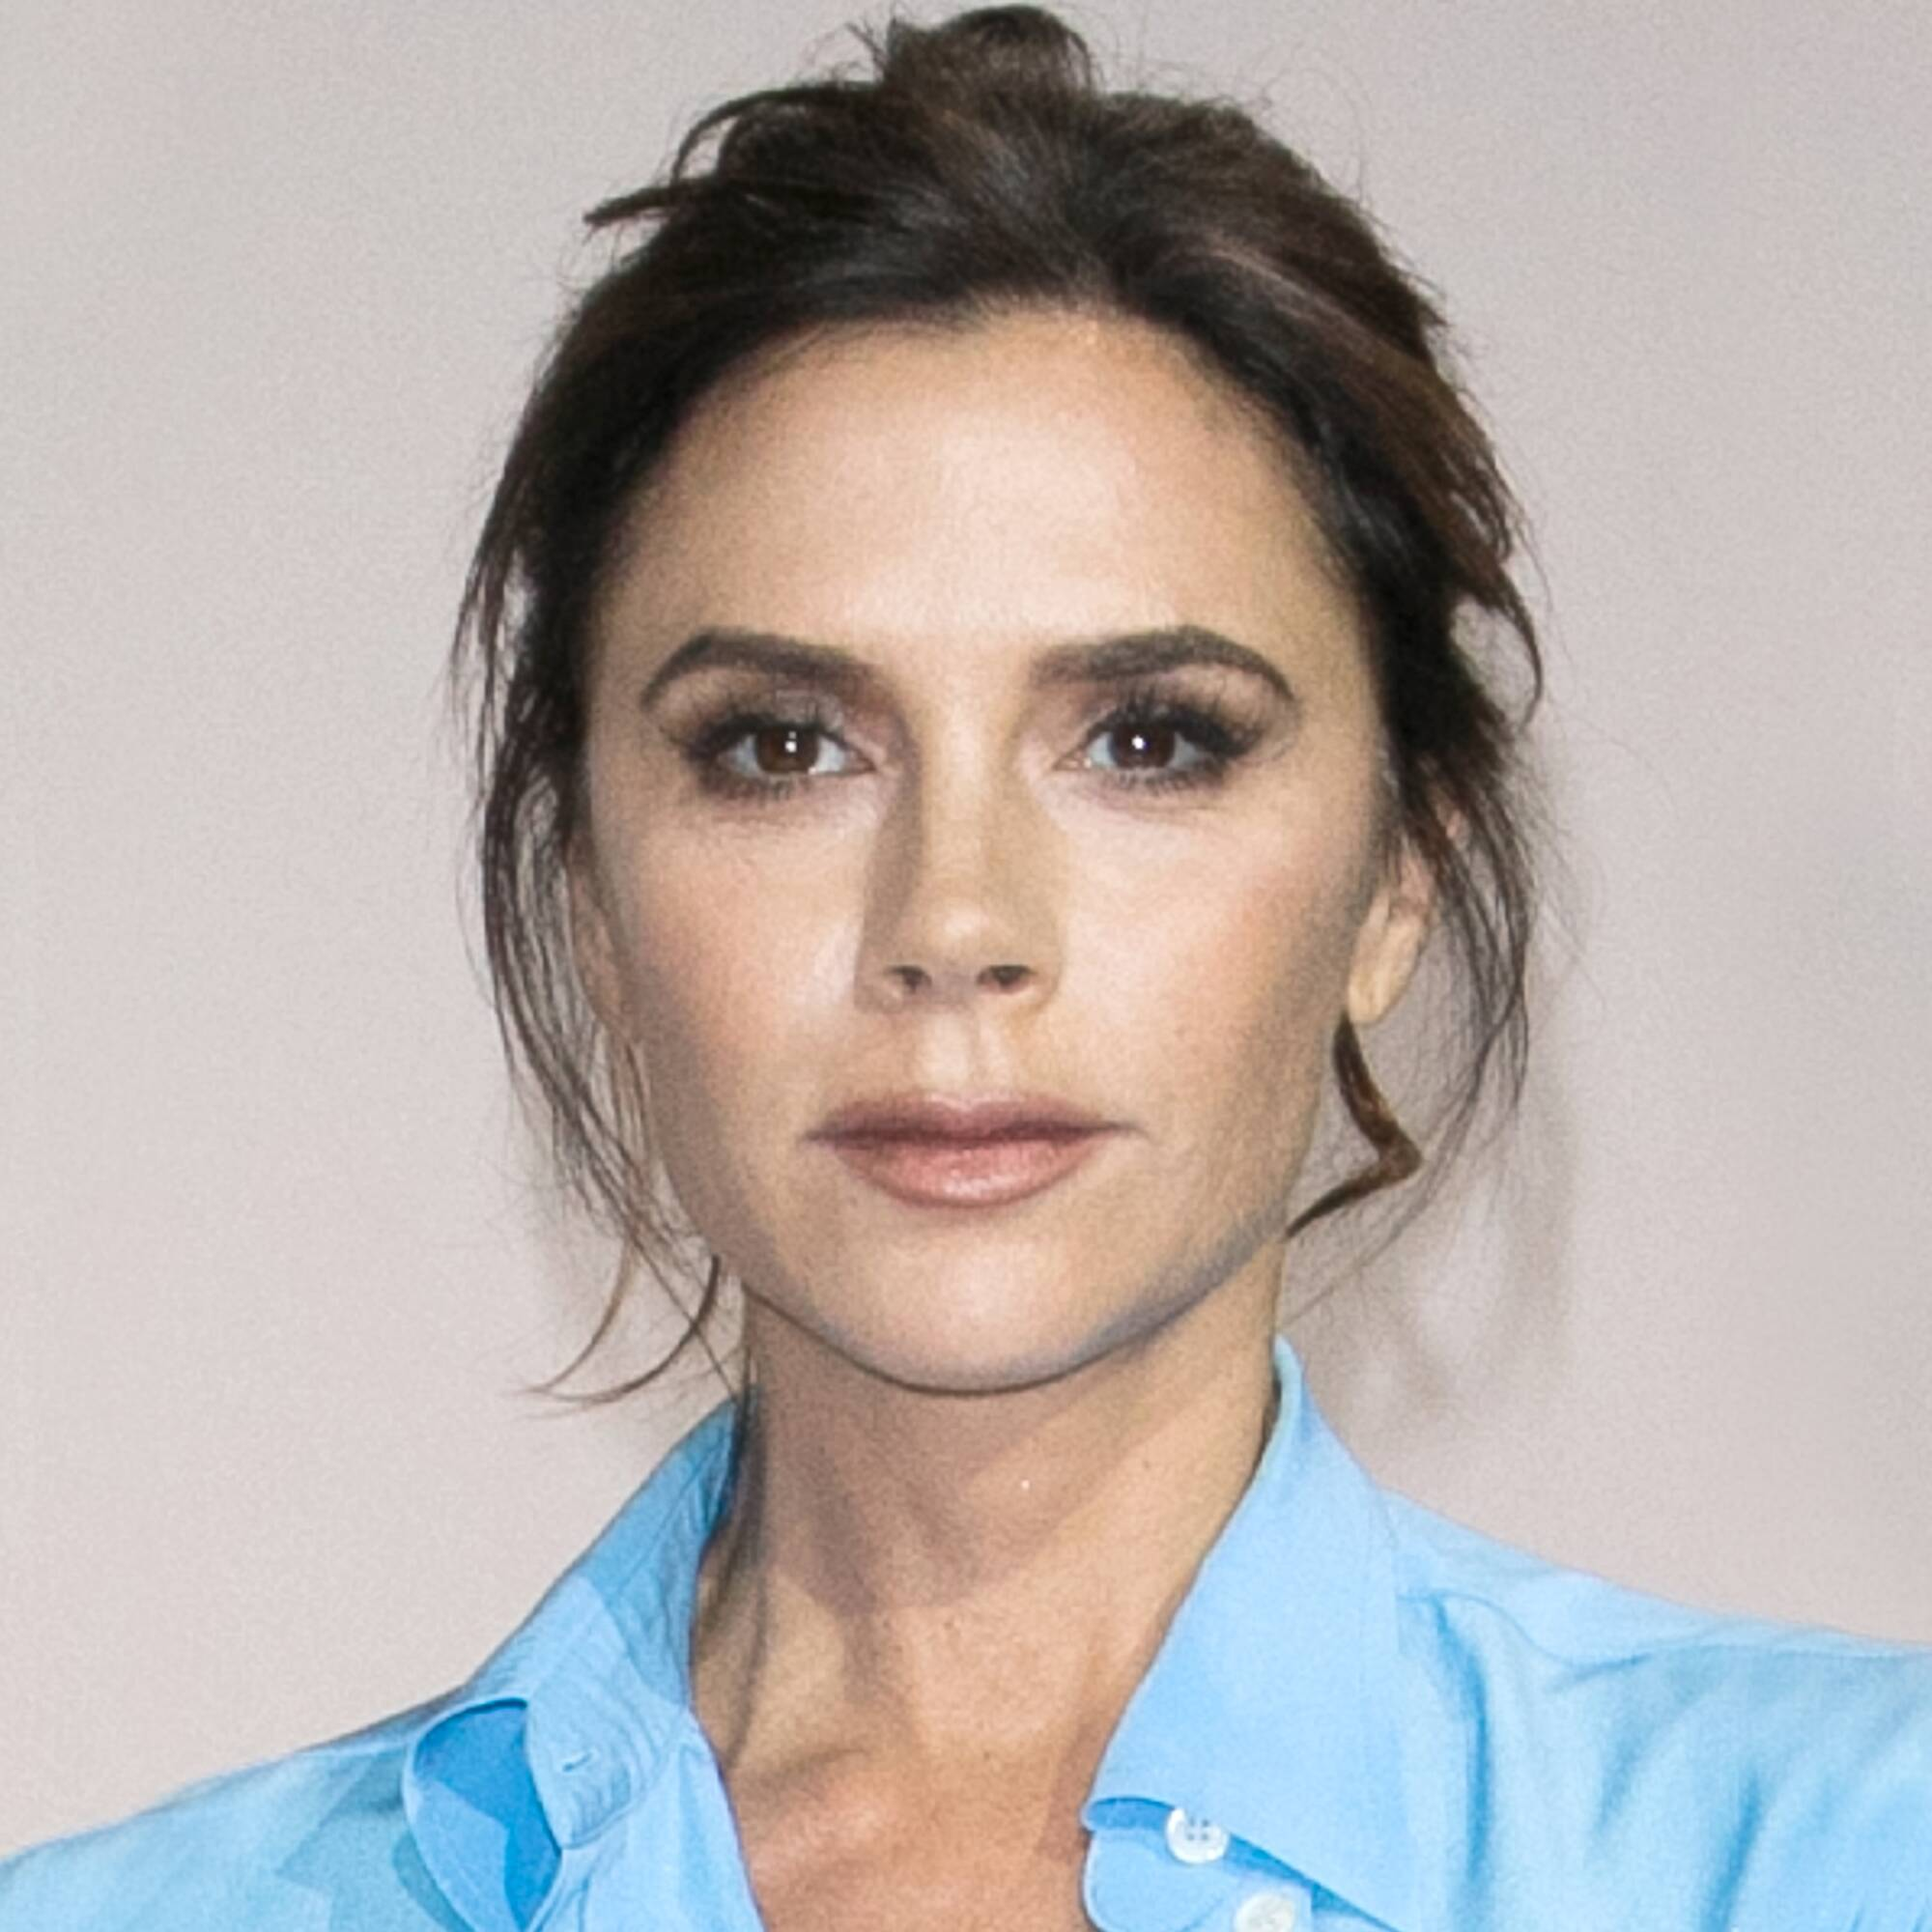 Victoria Beckhams Changing Looks Instyle